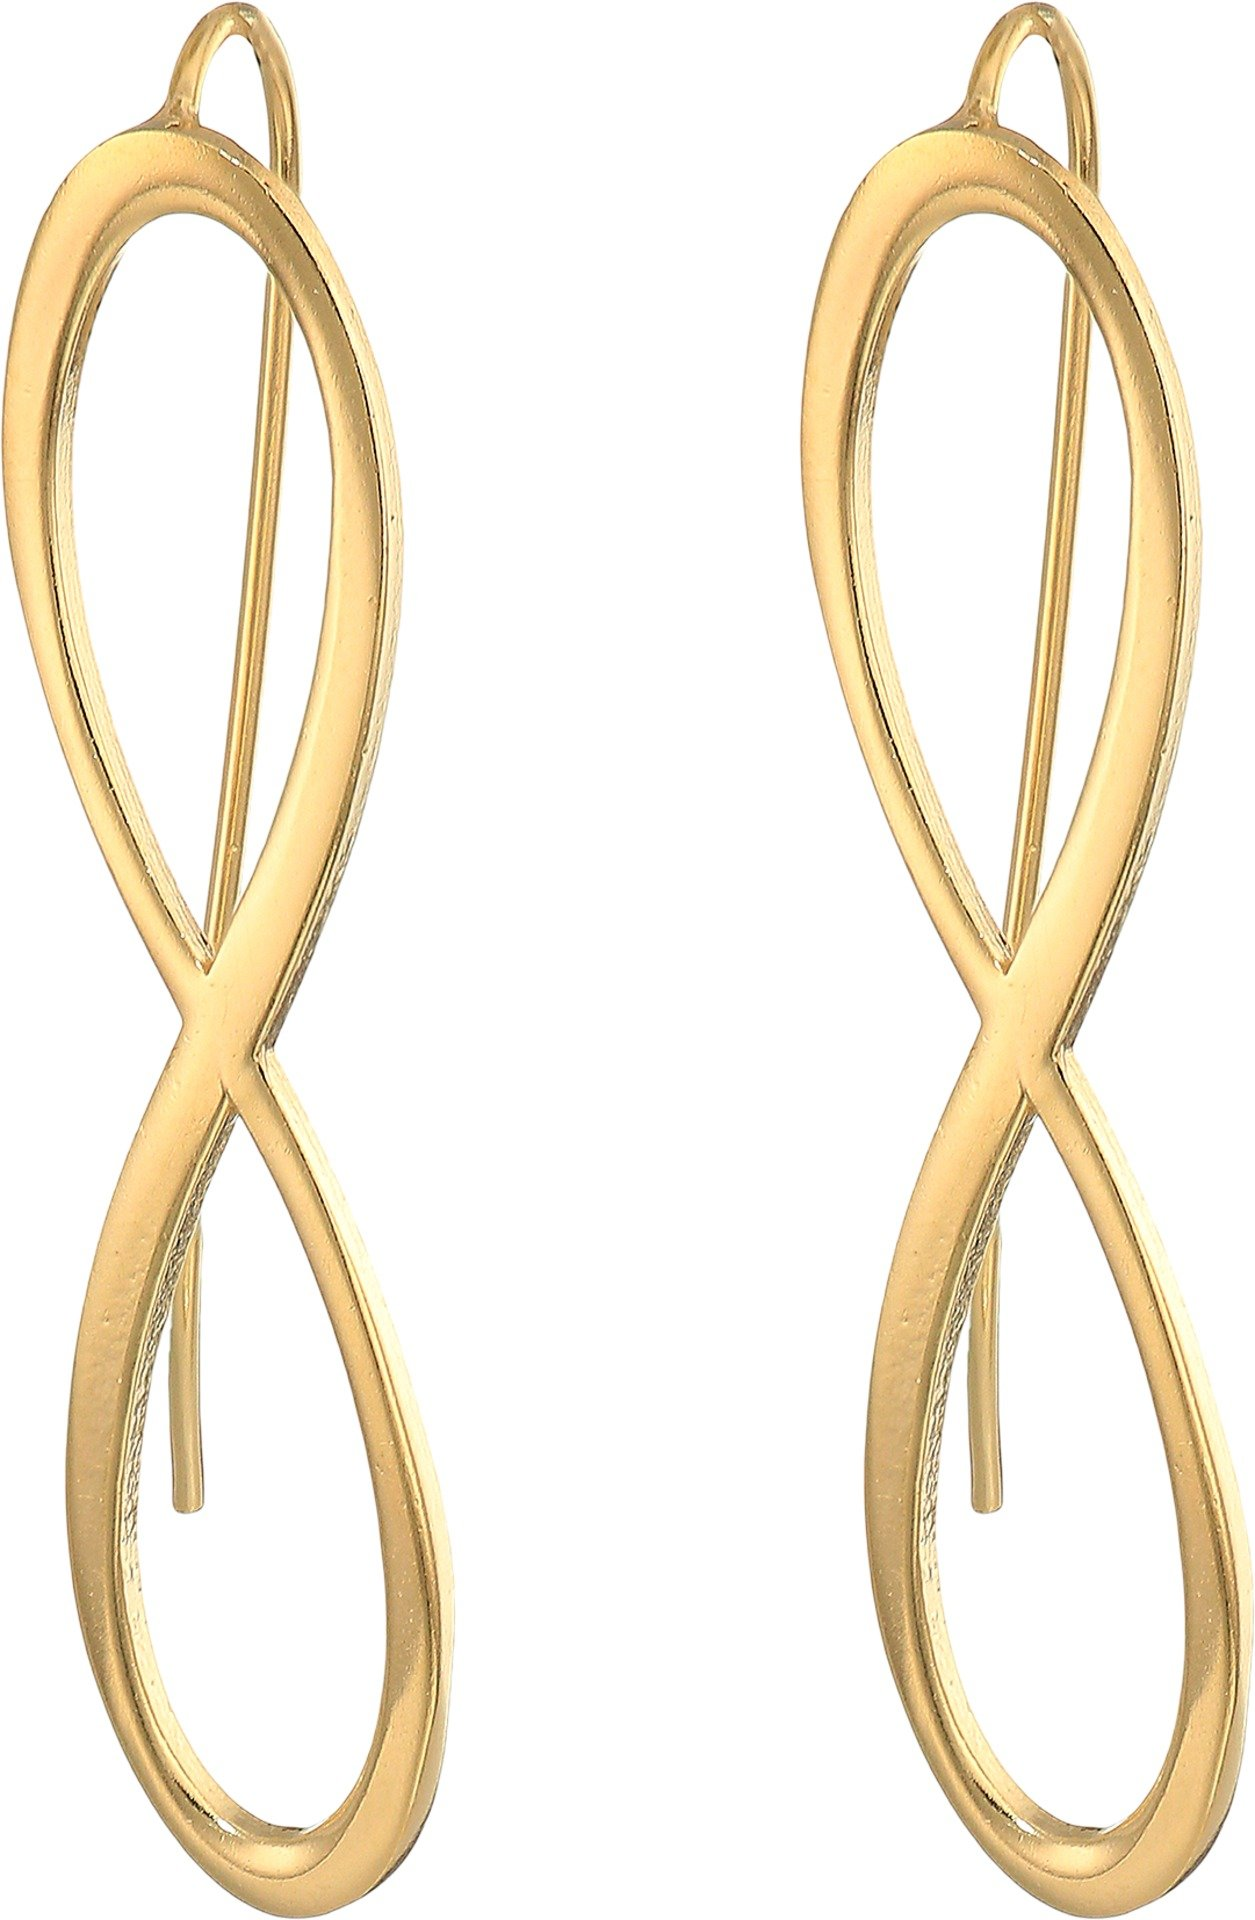 Alex and Ani Women's Infinity Earrings 14kt Gold Plated One Size